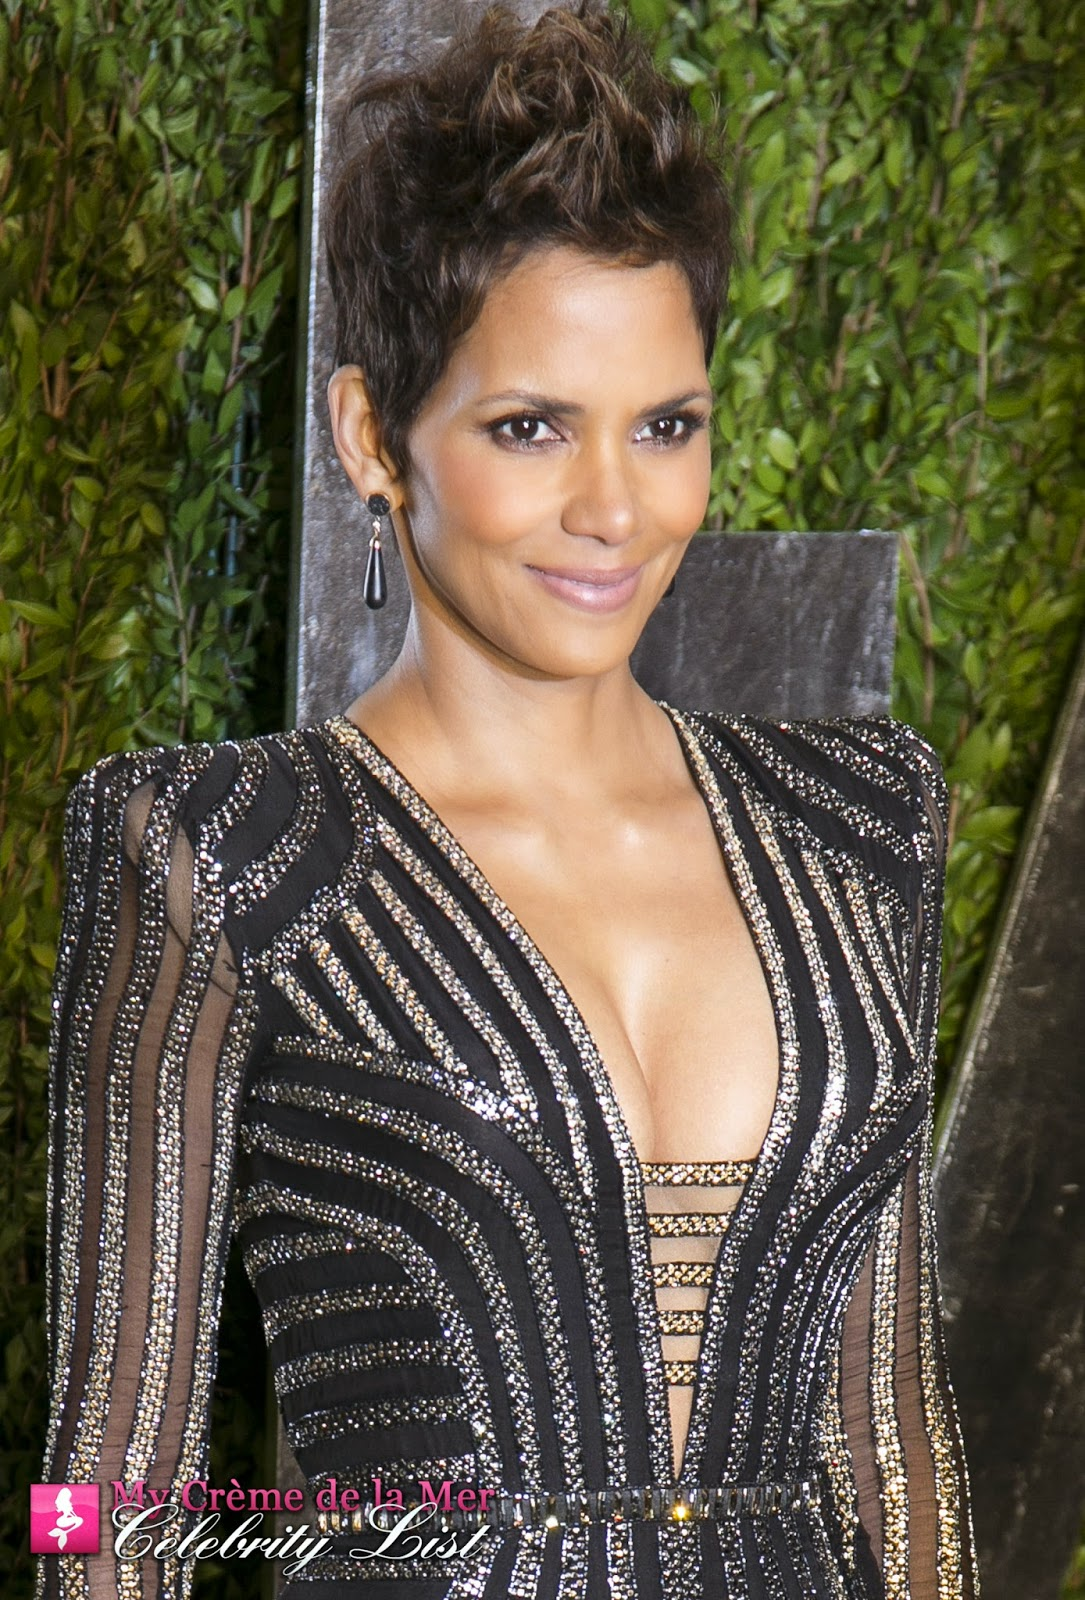 Halle Berry, now on the My Crème de la Mer Celebrity List, swears by The Crème and uses her La Mer Body Crème daily and says: